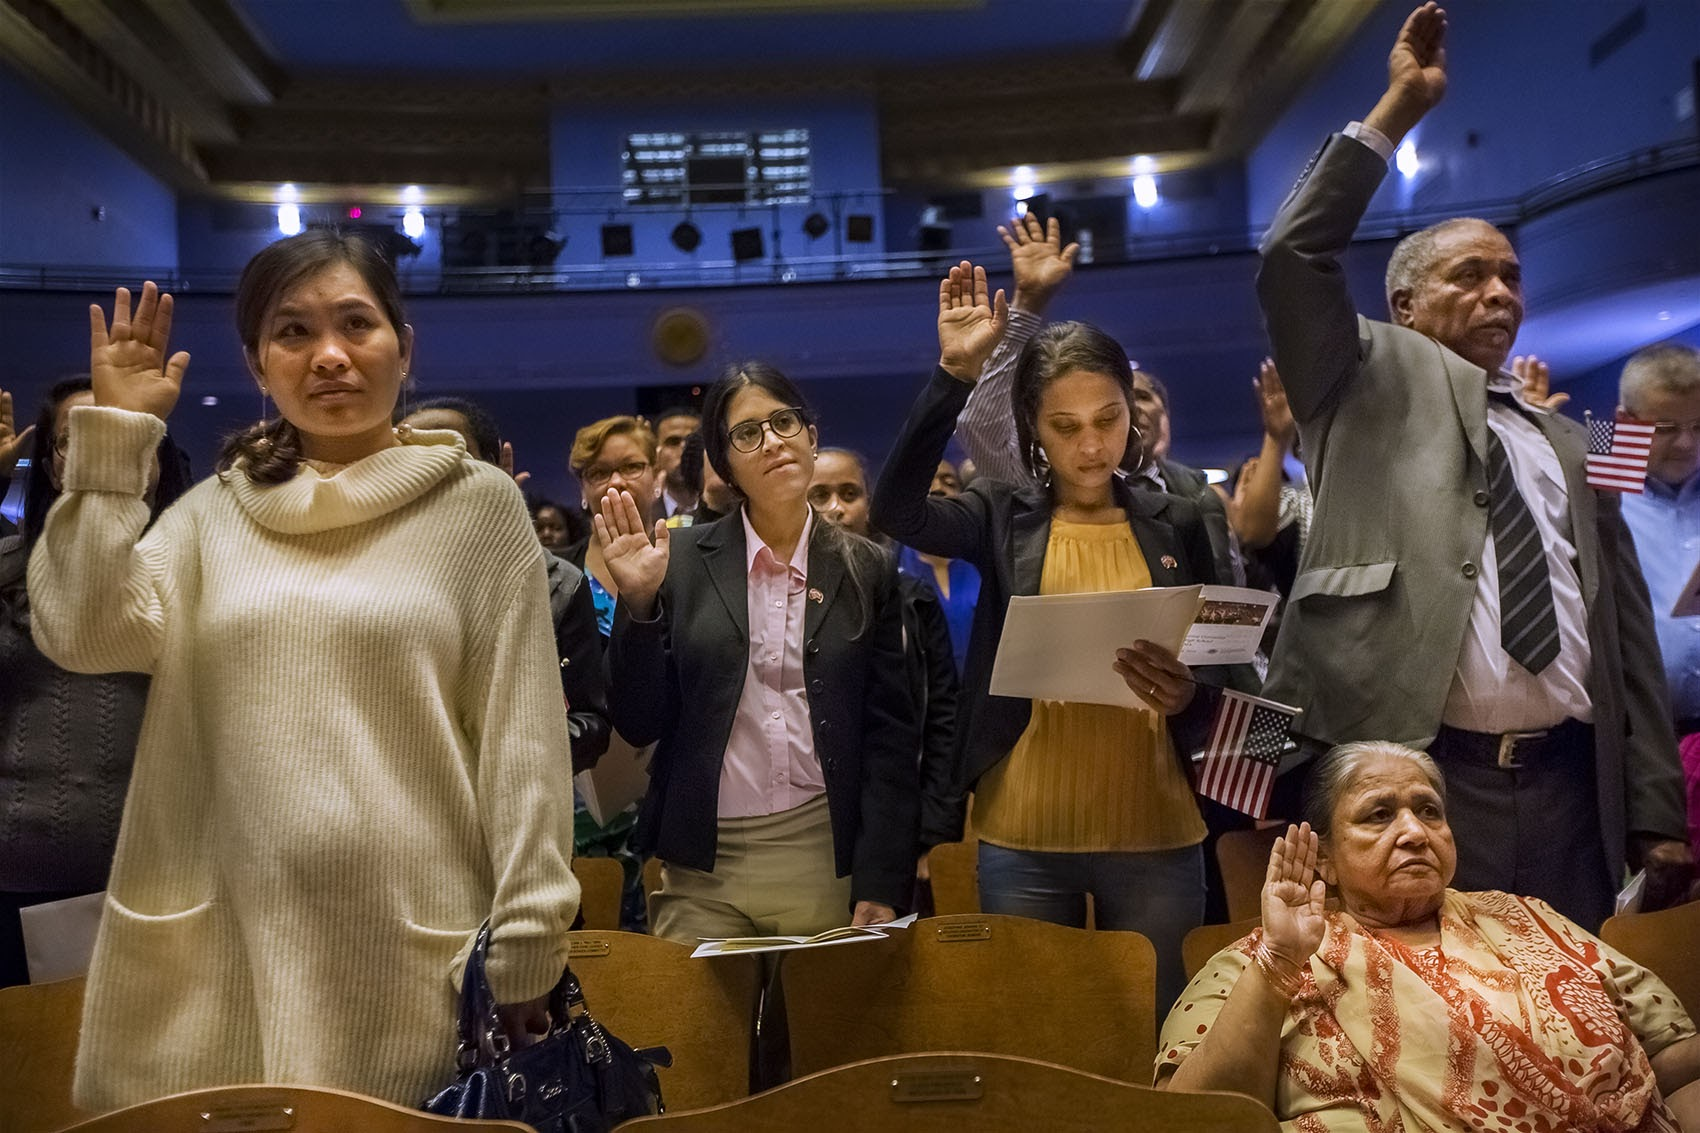 Close to 150 naturalization applicants took the Oath of Allegiance during a ceremony at Jenkins Auditorium at Malden High School on Oct. 18. (Jesse Costa/WBUR)